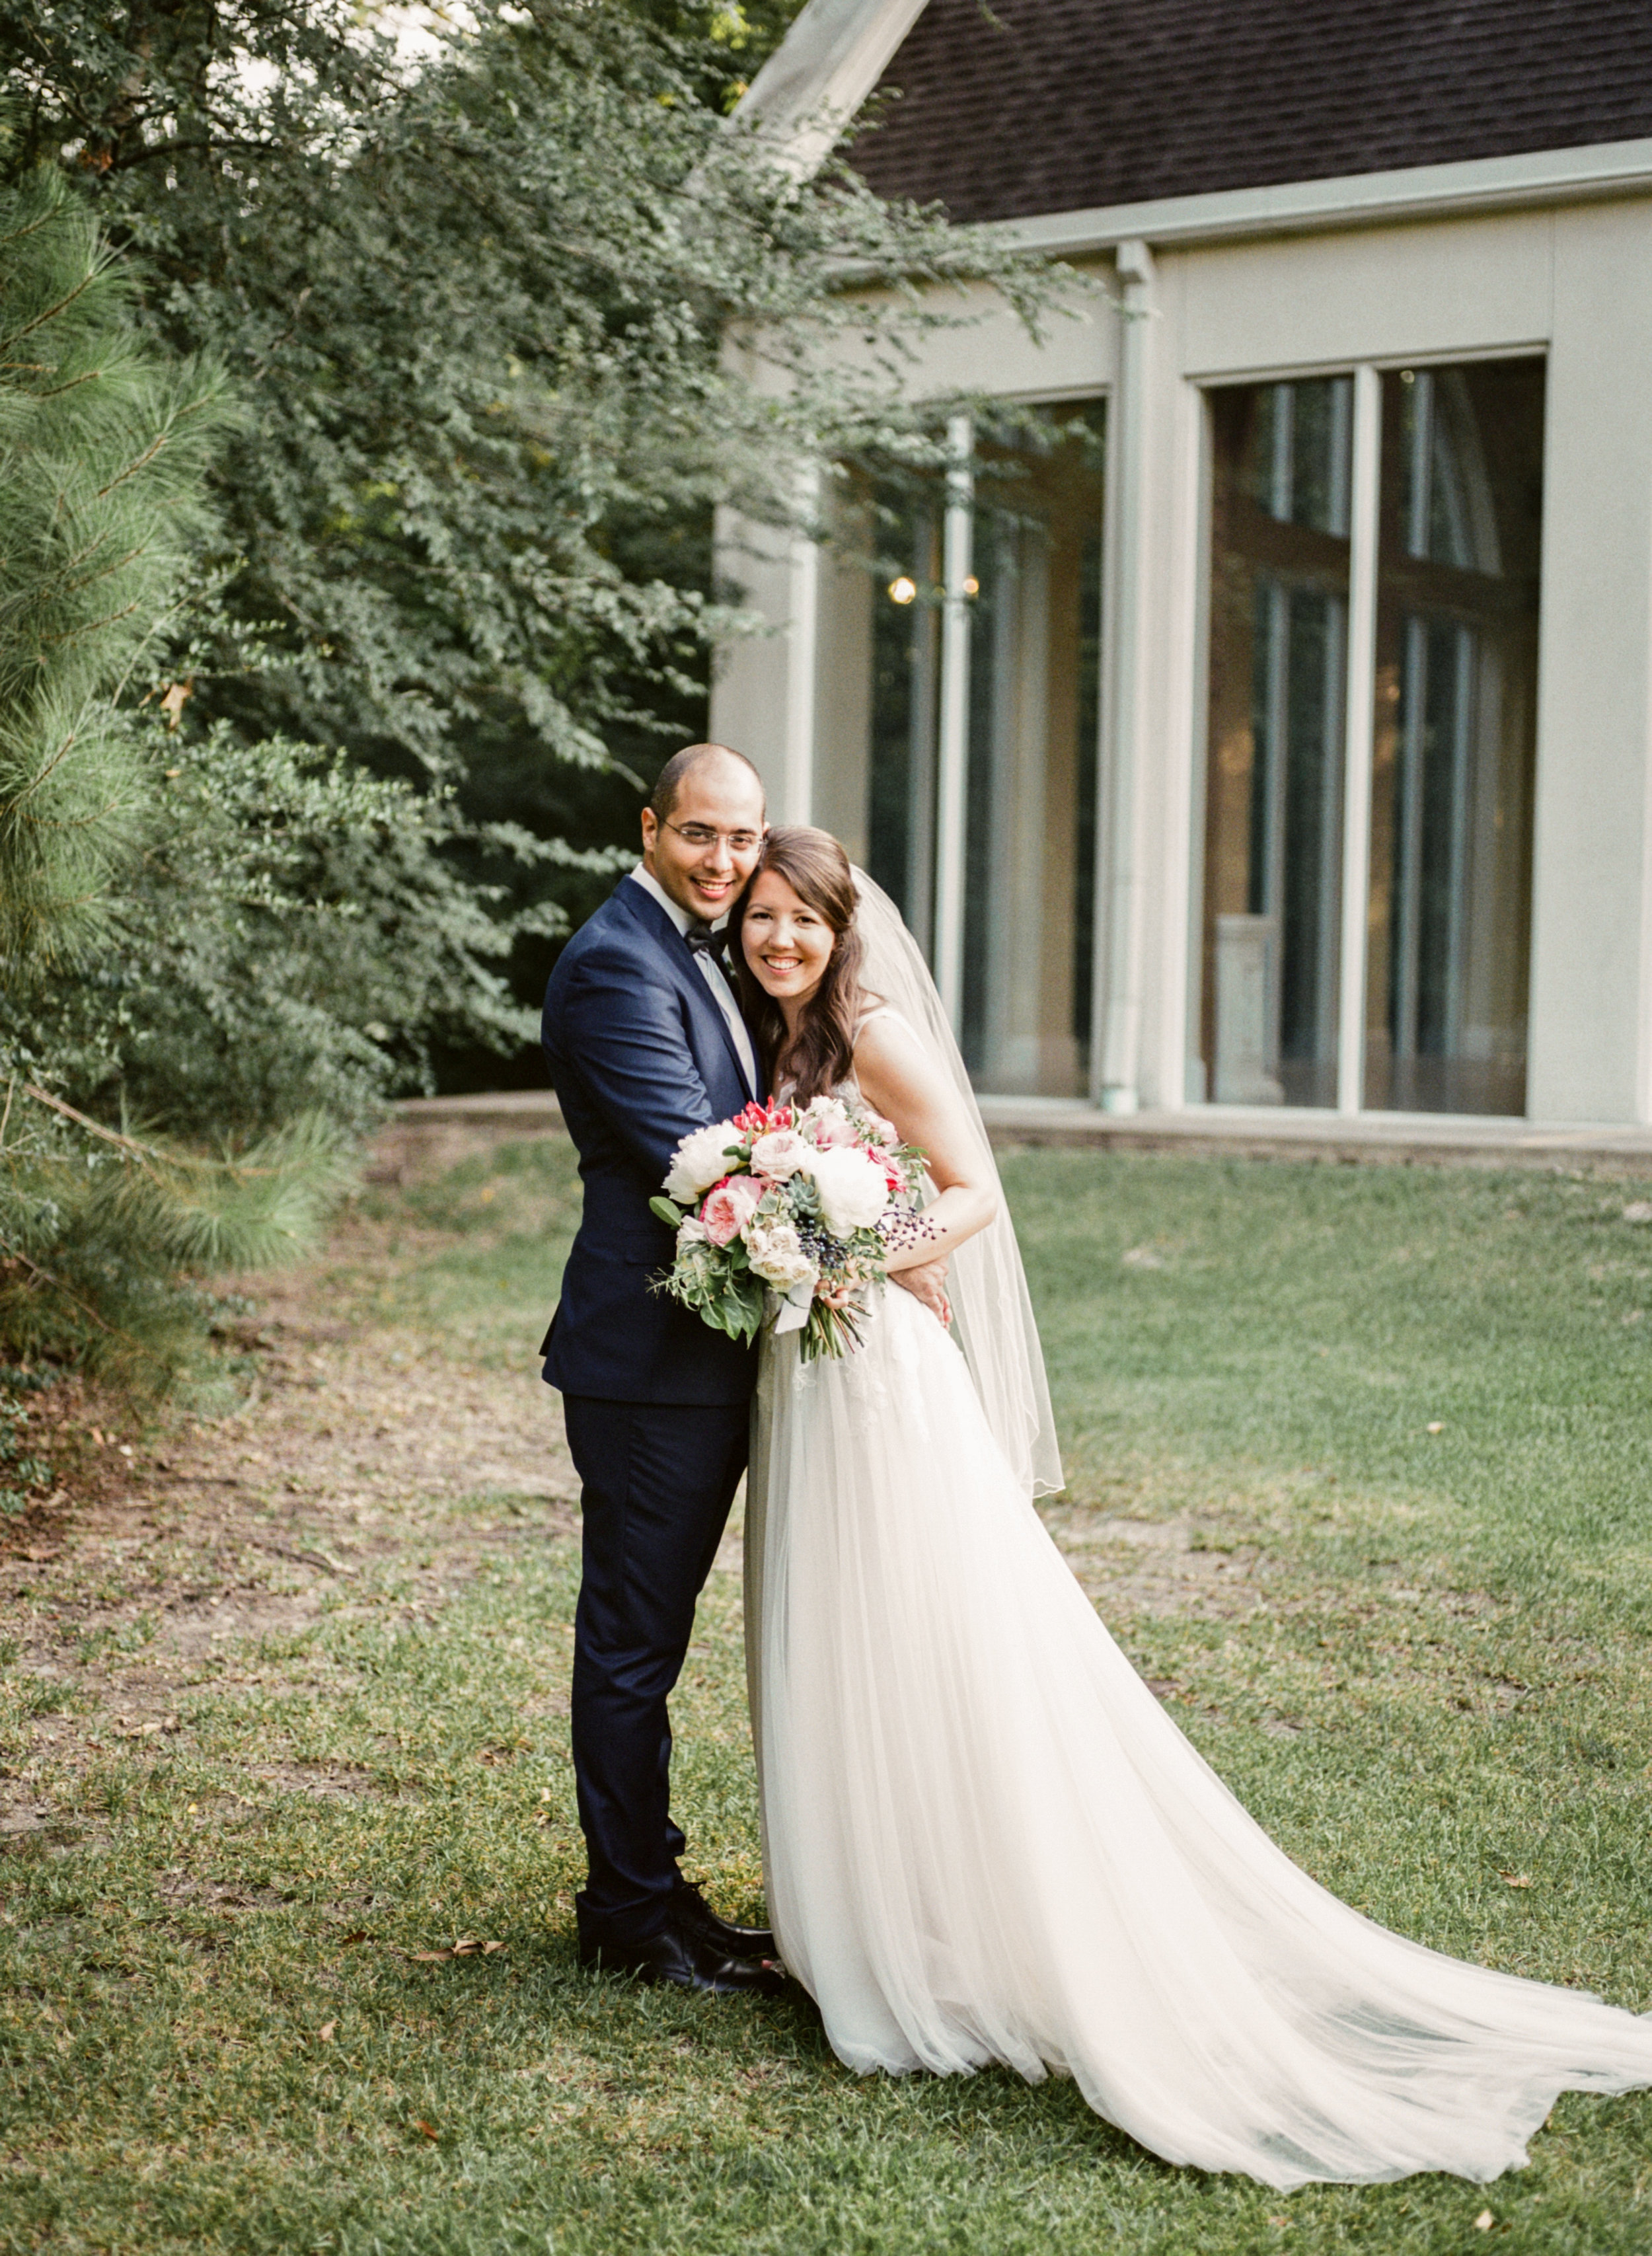 """Lydia + John - """"When I first saw my bouquet in the bridal room, I was stunned. They were so beautiful and even better than I envisioned. While i did not have time to notice some of the wedding details, I kept noticing the florals and was just so in love with them. My bridesmaids can attest to how much I commented on their bouquets and how lovely they all looked with our color scheme. Also, I want to let you know how impressed we both were with how you helped us in planning for the florals. The quote format was so easy to use and helpful as we decided how to maximize our budget. Your confidence and flexibility gave me no reason to stress about the florals.I can't say thank you enough!!!"""""""